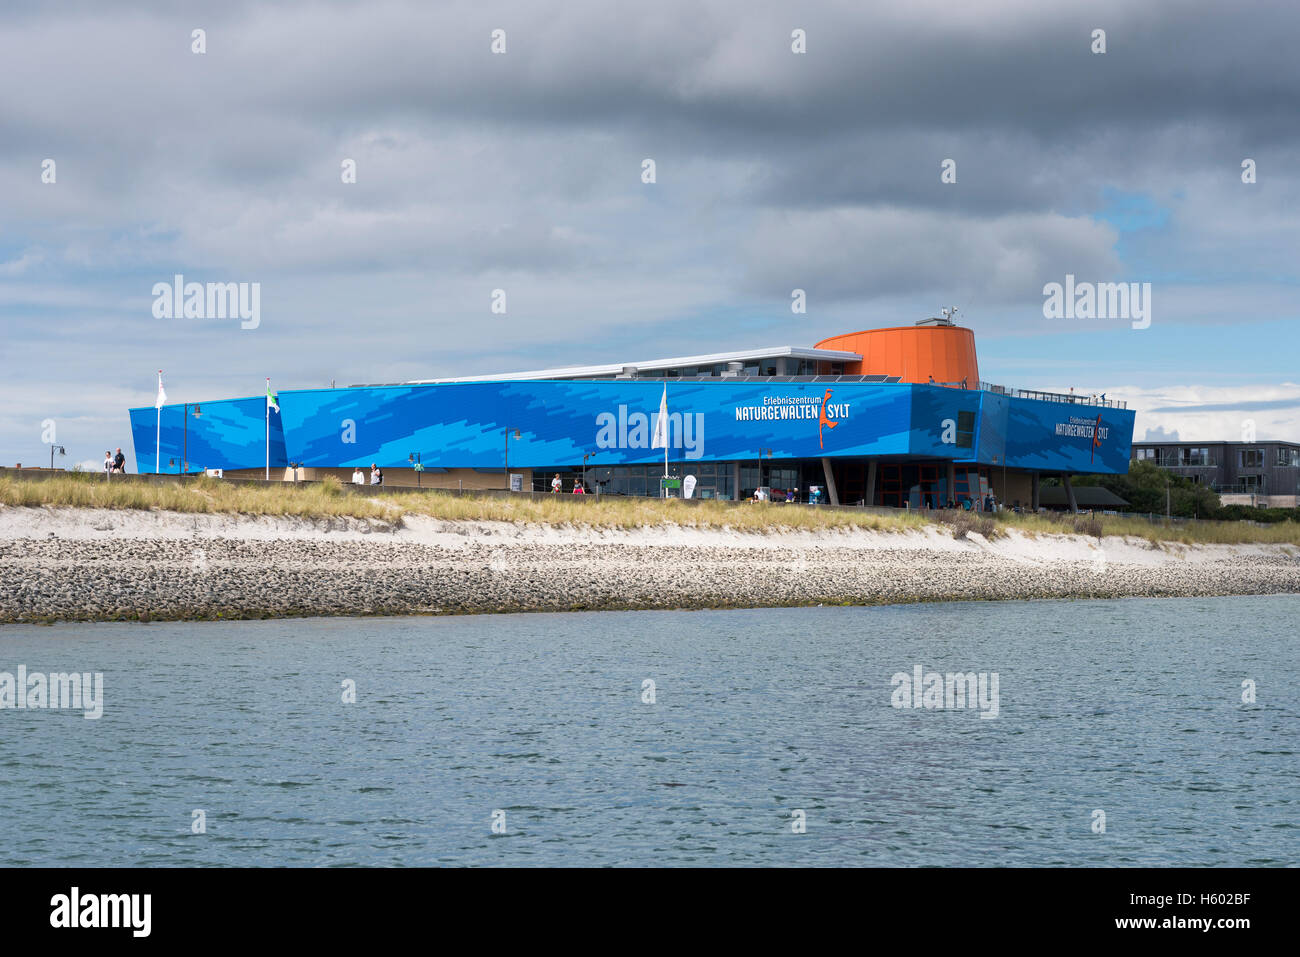 Forces of Nature Centre Sylt, since 2009, List, Sylt, Schleswig-Holstein, Germany - Stock Image